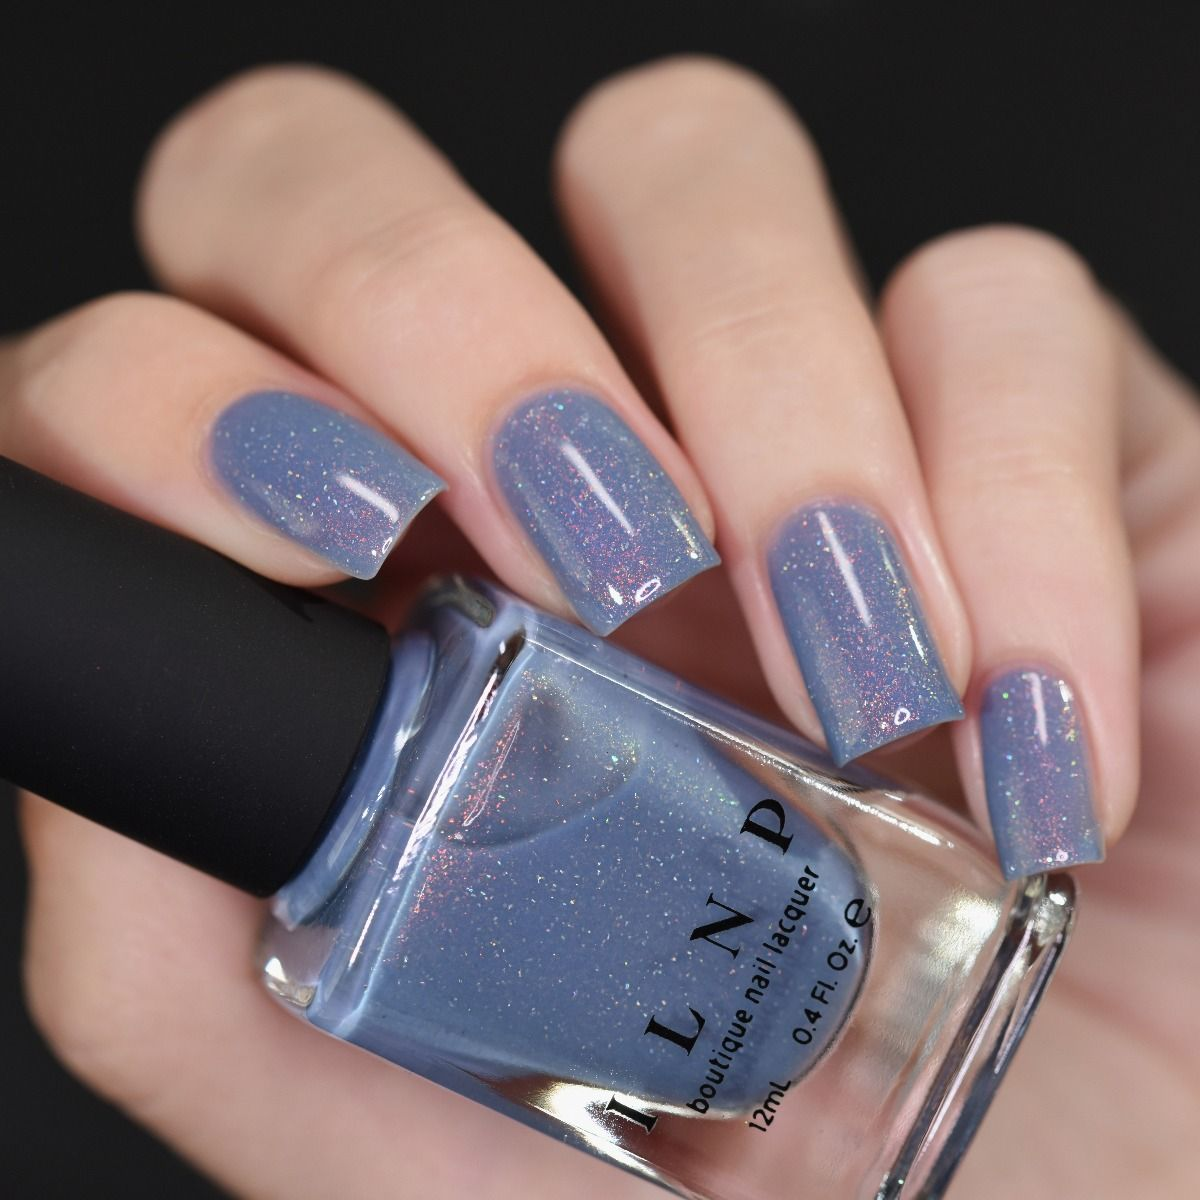 Dusk To Dawn – Dusky Blue Holographic Nail Polish by ILNP